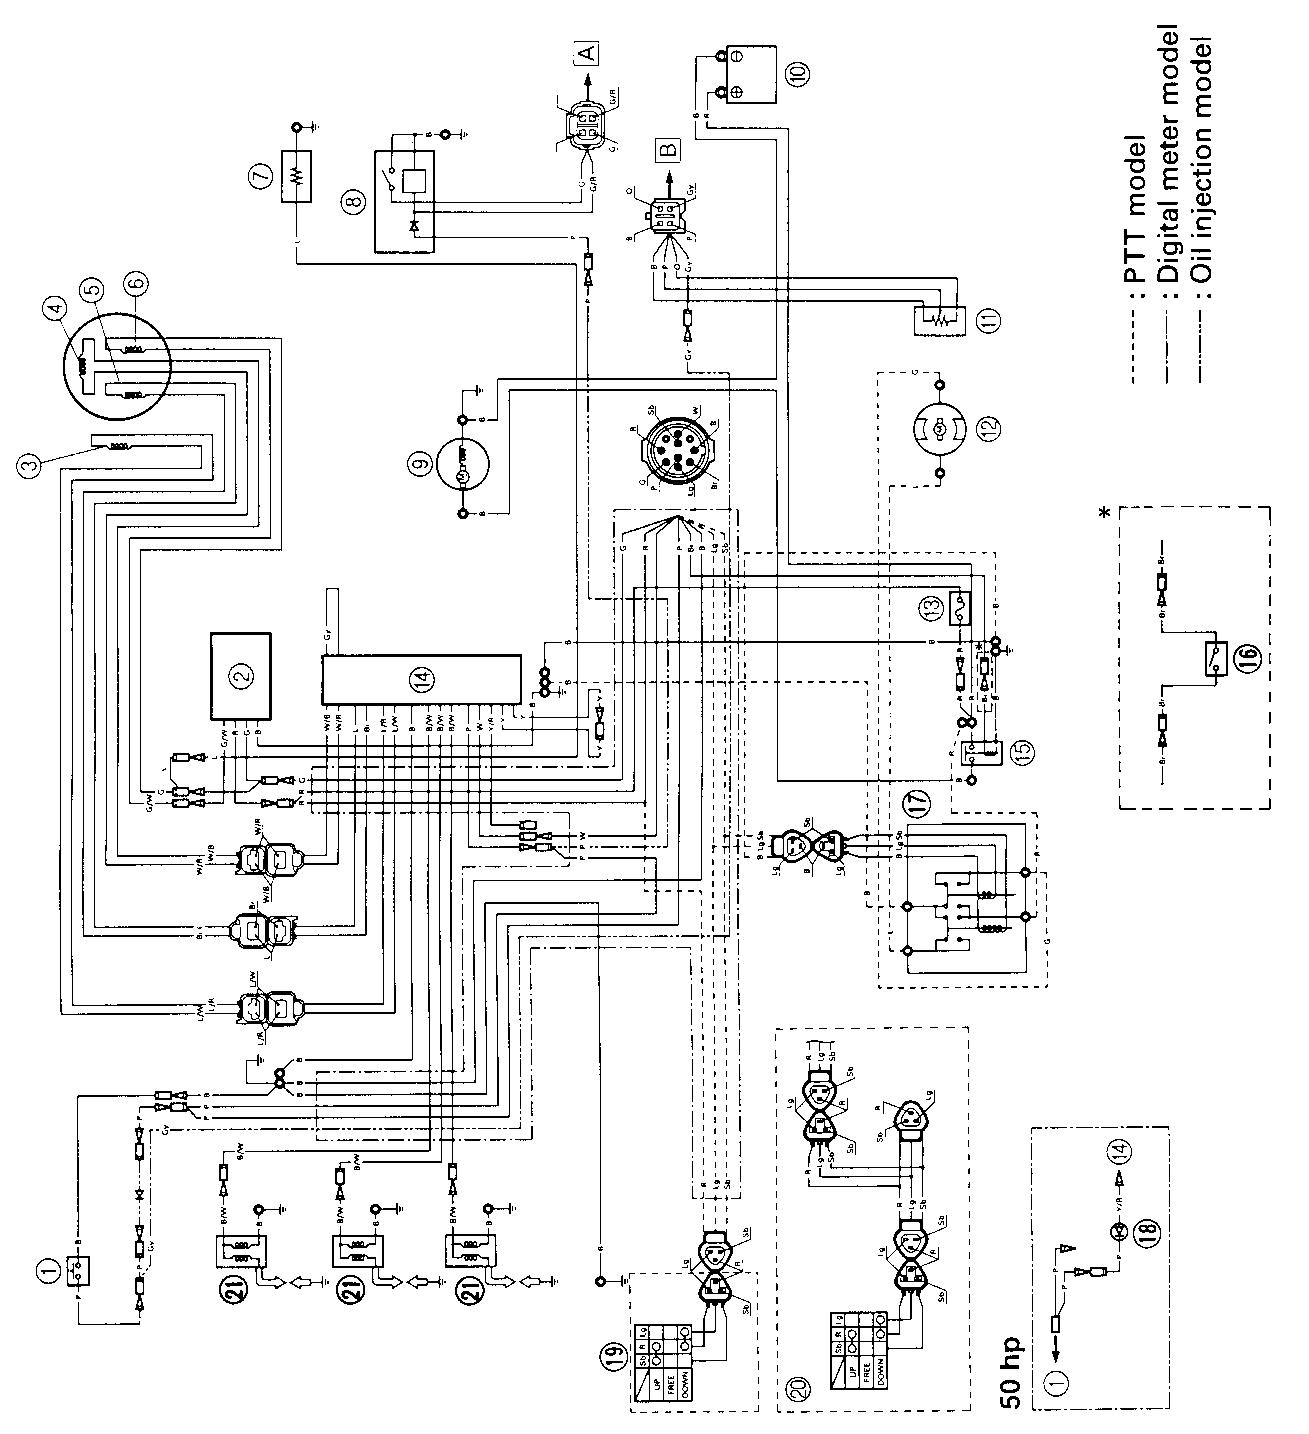 2008 10 04_150209_yamaha_engine_wiring_506070 yamaha tach wiring diagram the wiring diagram readingrat net  at edmiracle.co